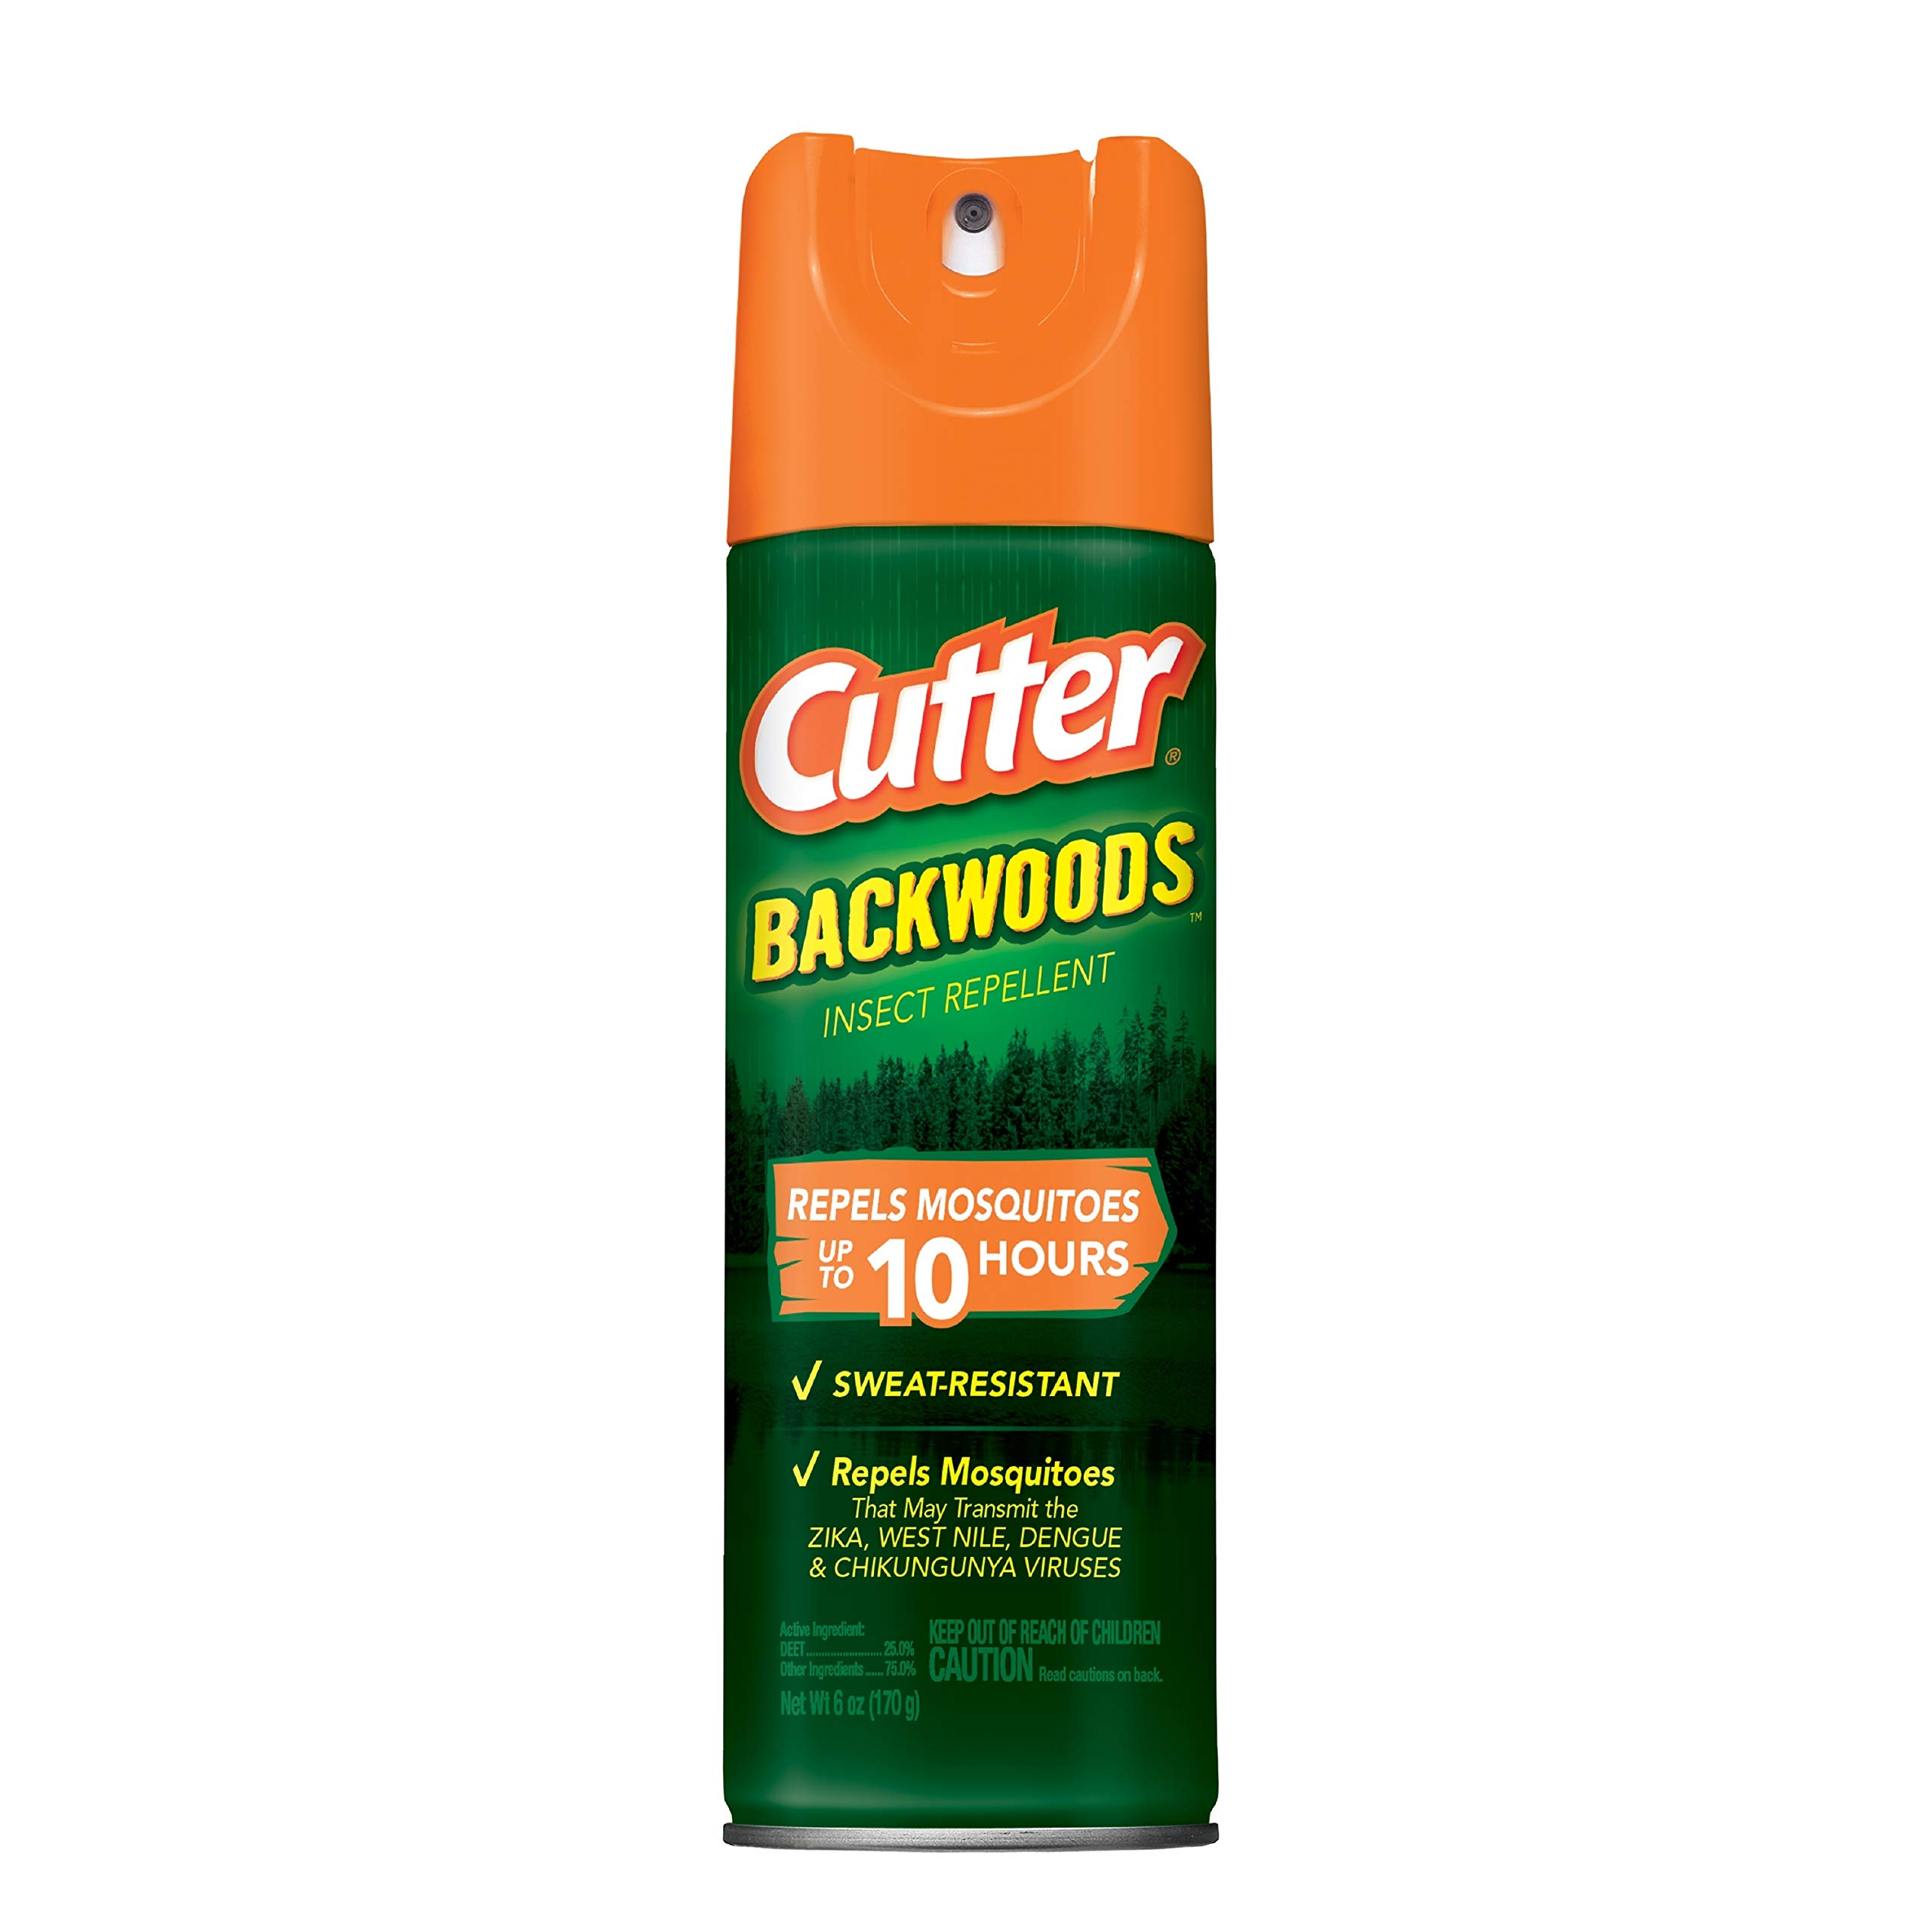 Cutter Backwoods Insect Repellent, Aerosol, 6-Ounce, 12-Pack